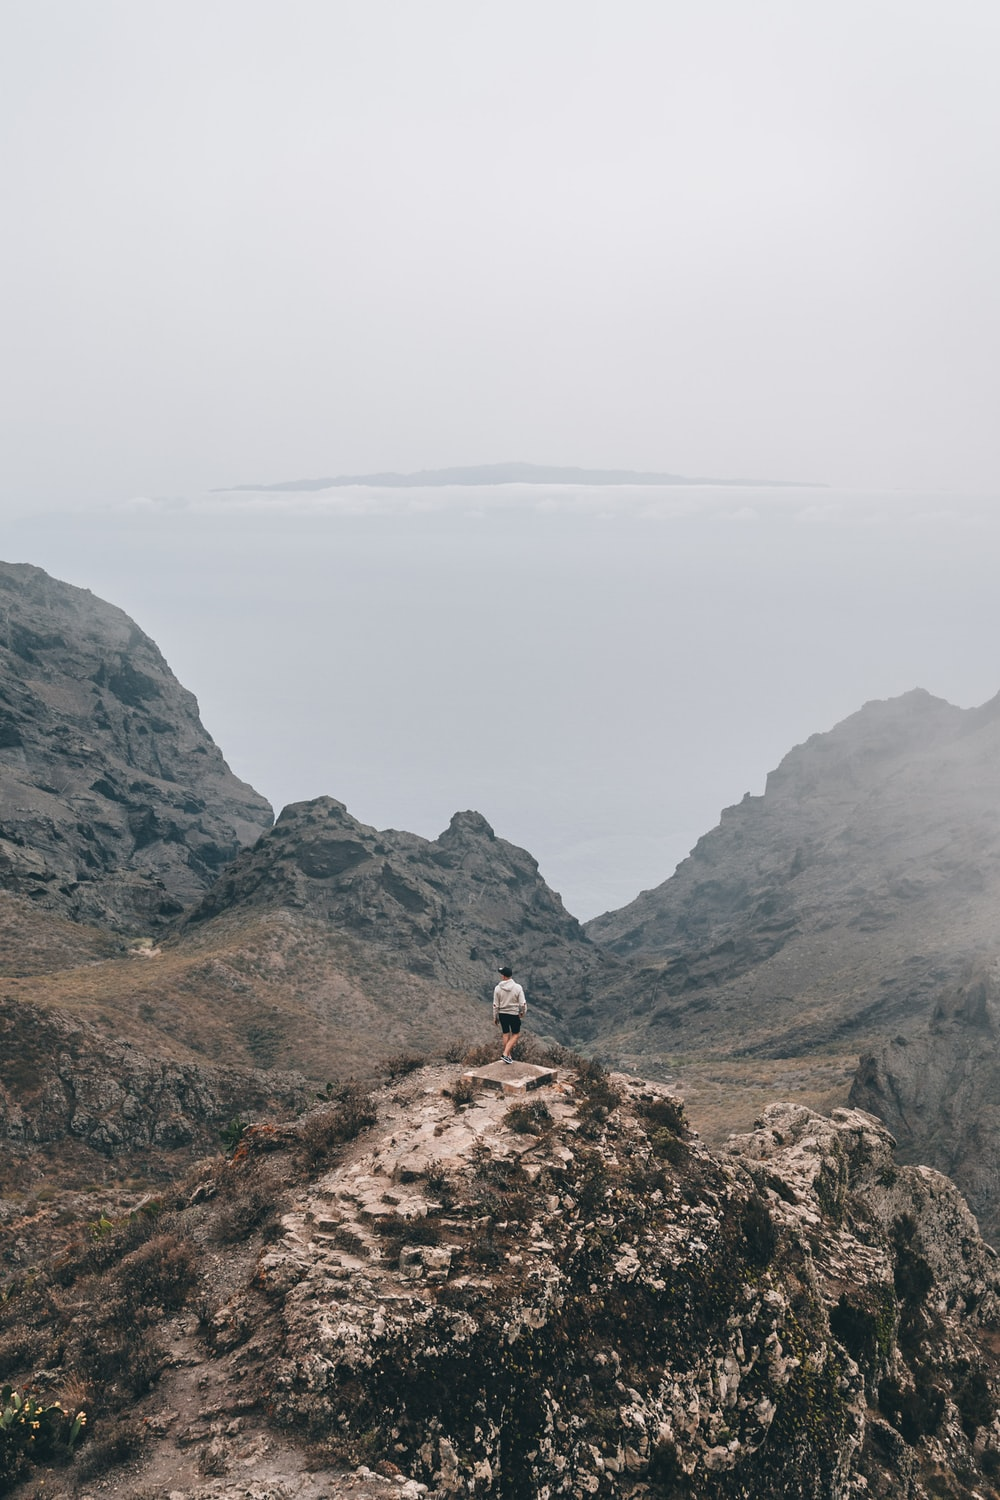 person in white shirt standing on brown rock mountain during daytime